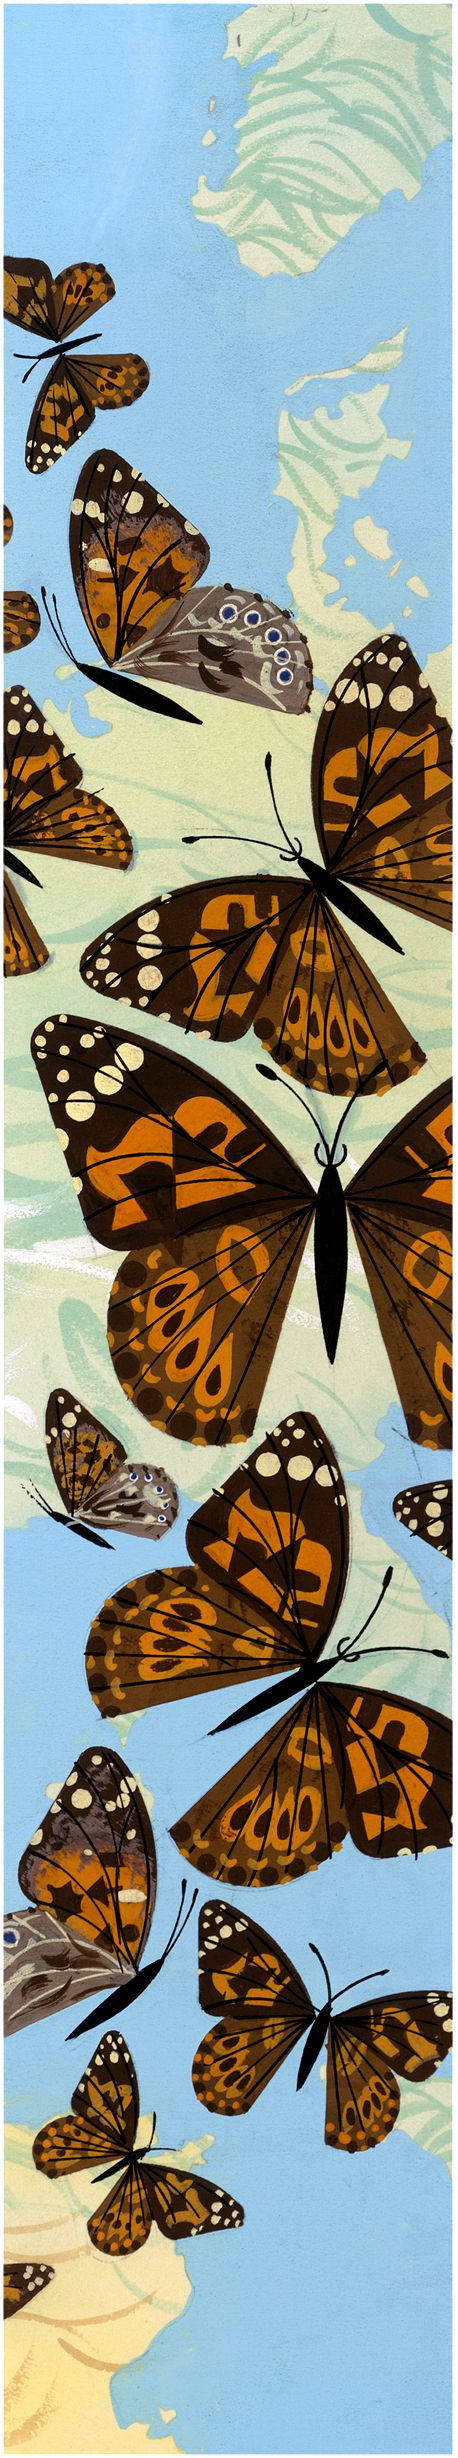 Blue Sky and Butterflies by Charley Harper, Monarch Butterflies